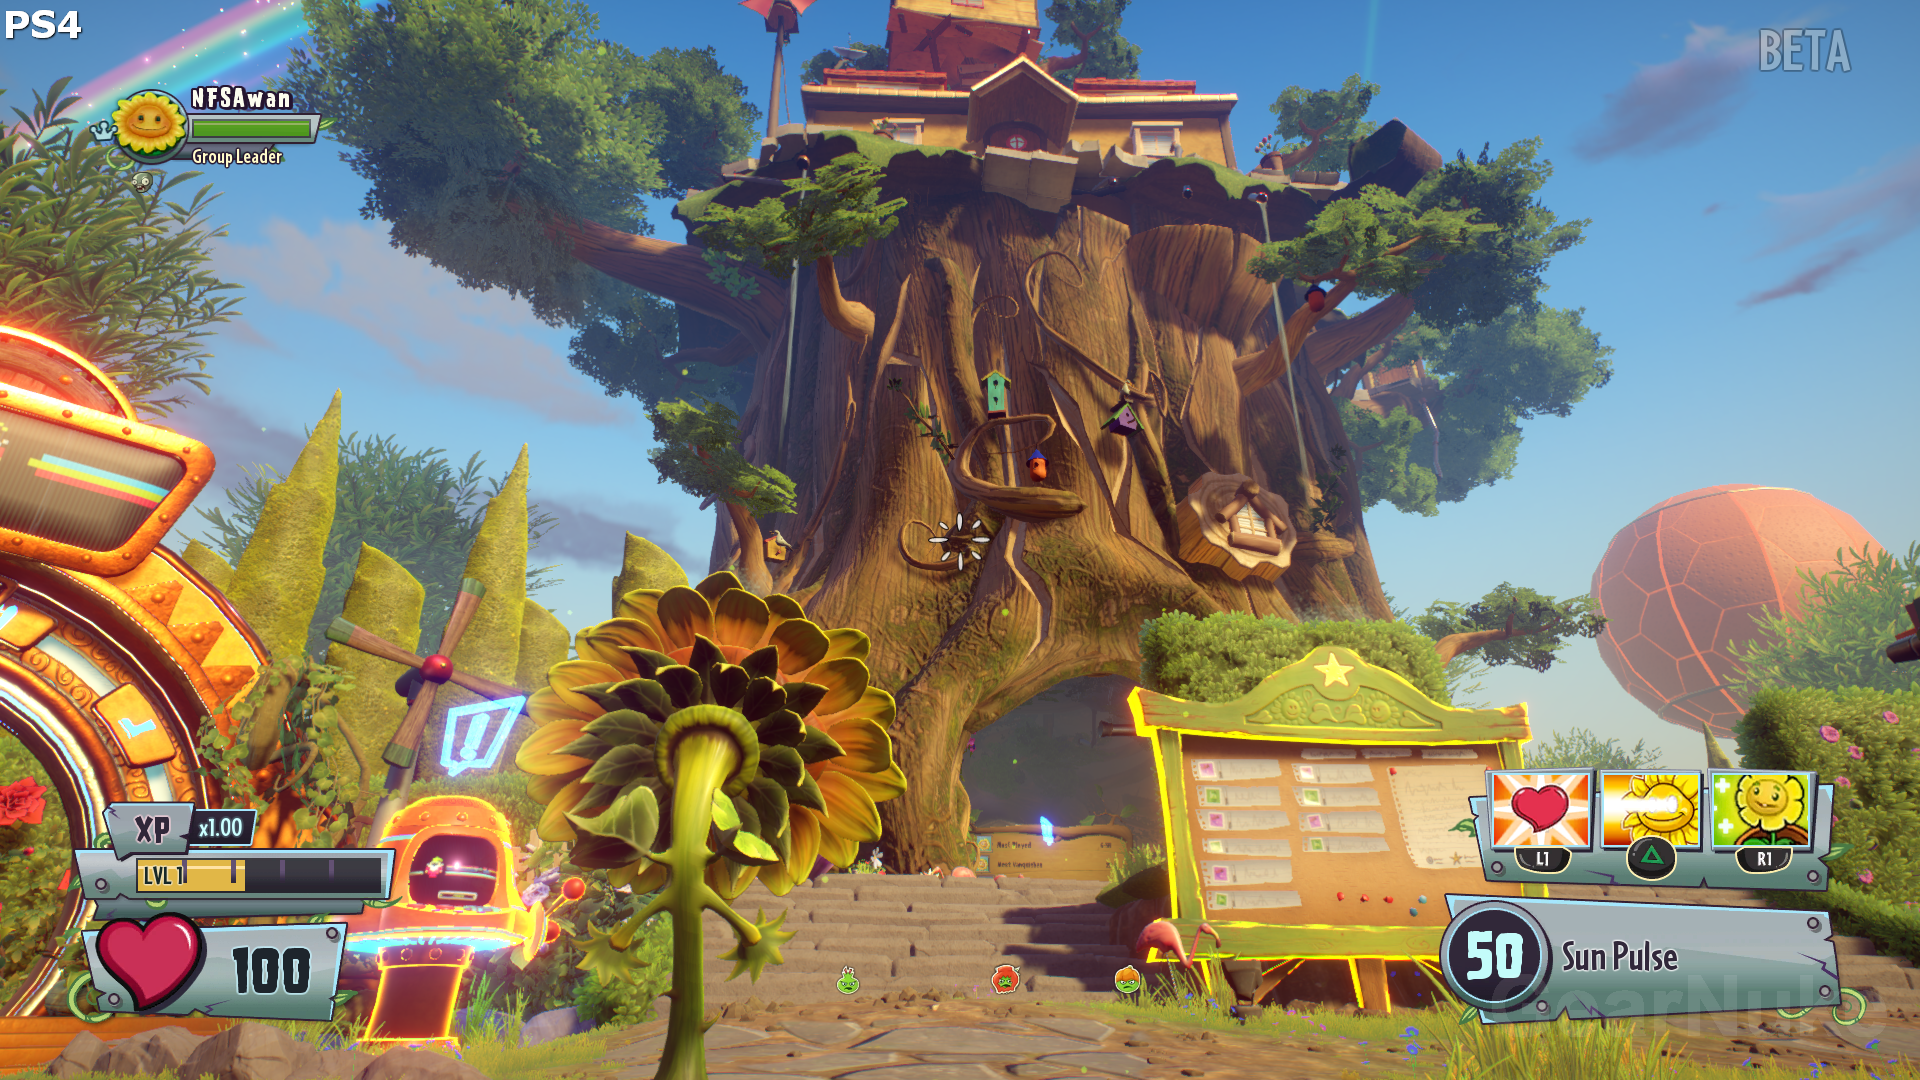 Garden: Xbox One Garden Warfare